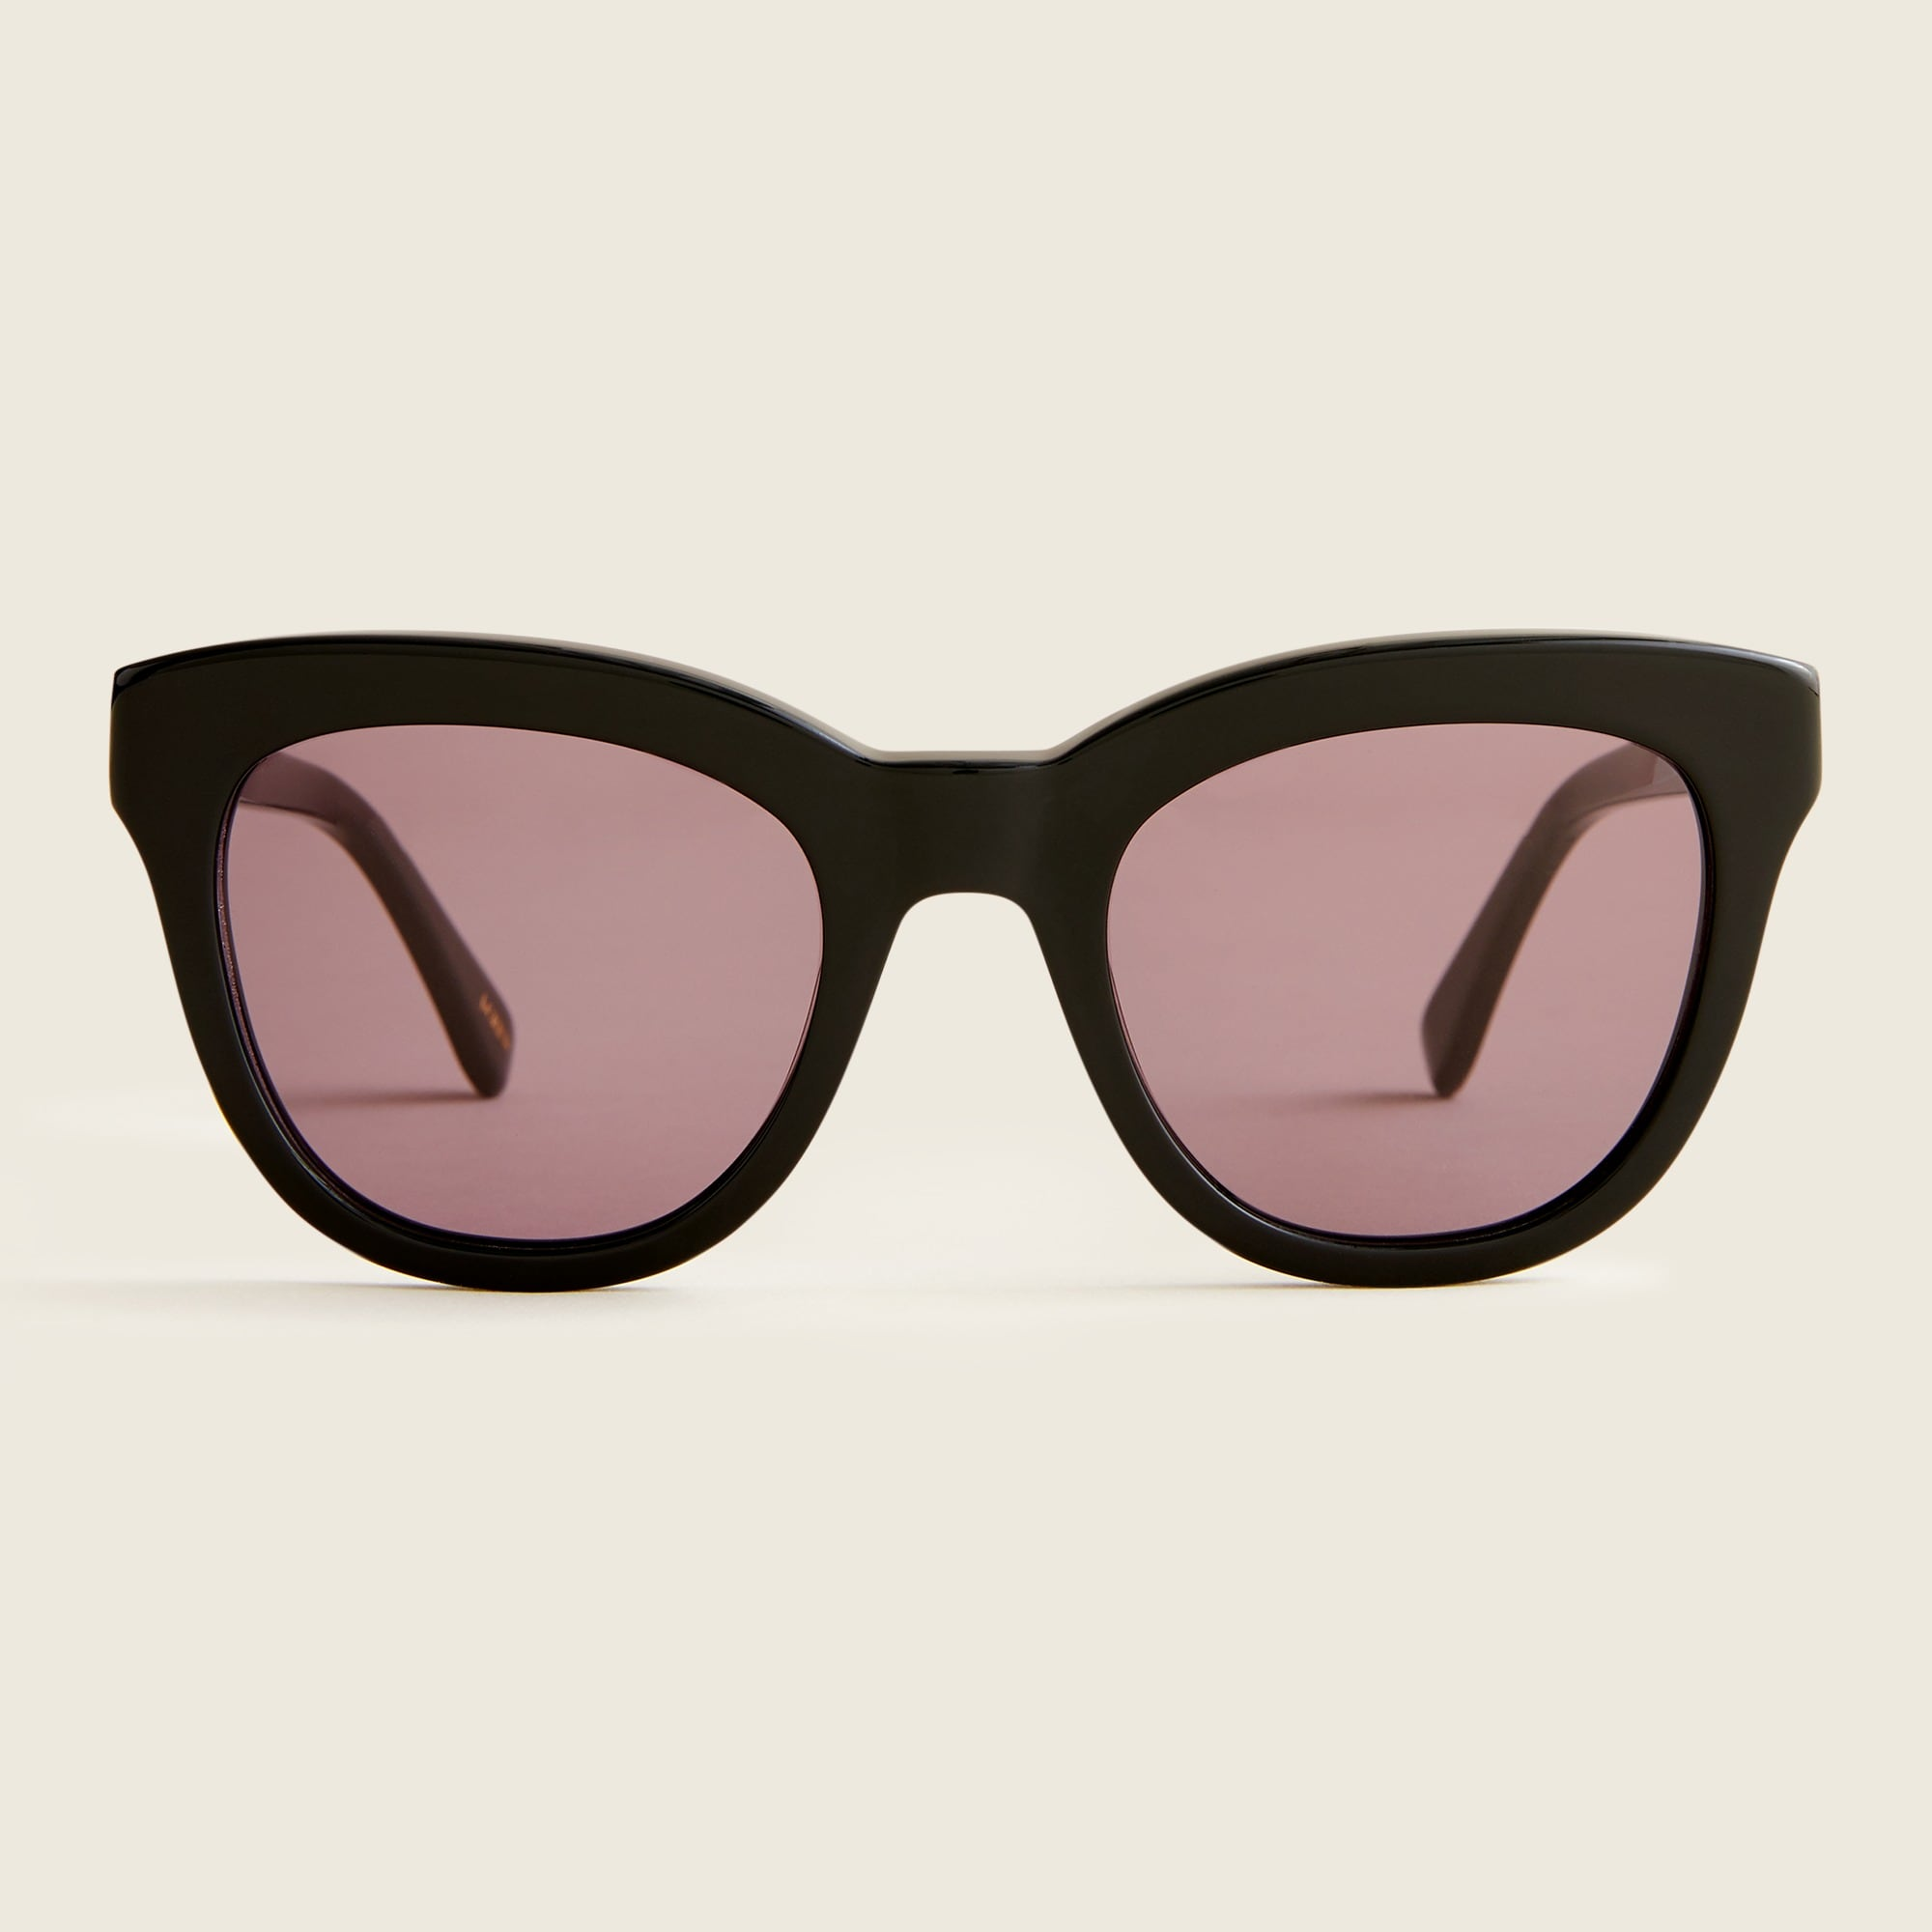 Cabana oversized sunglasses women new arrivals c